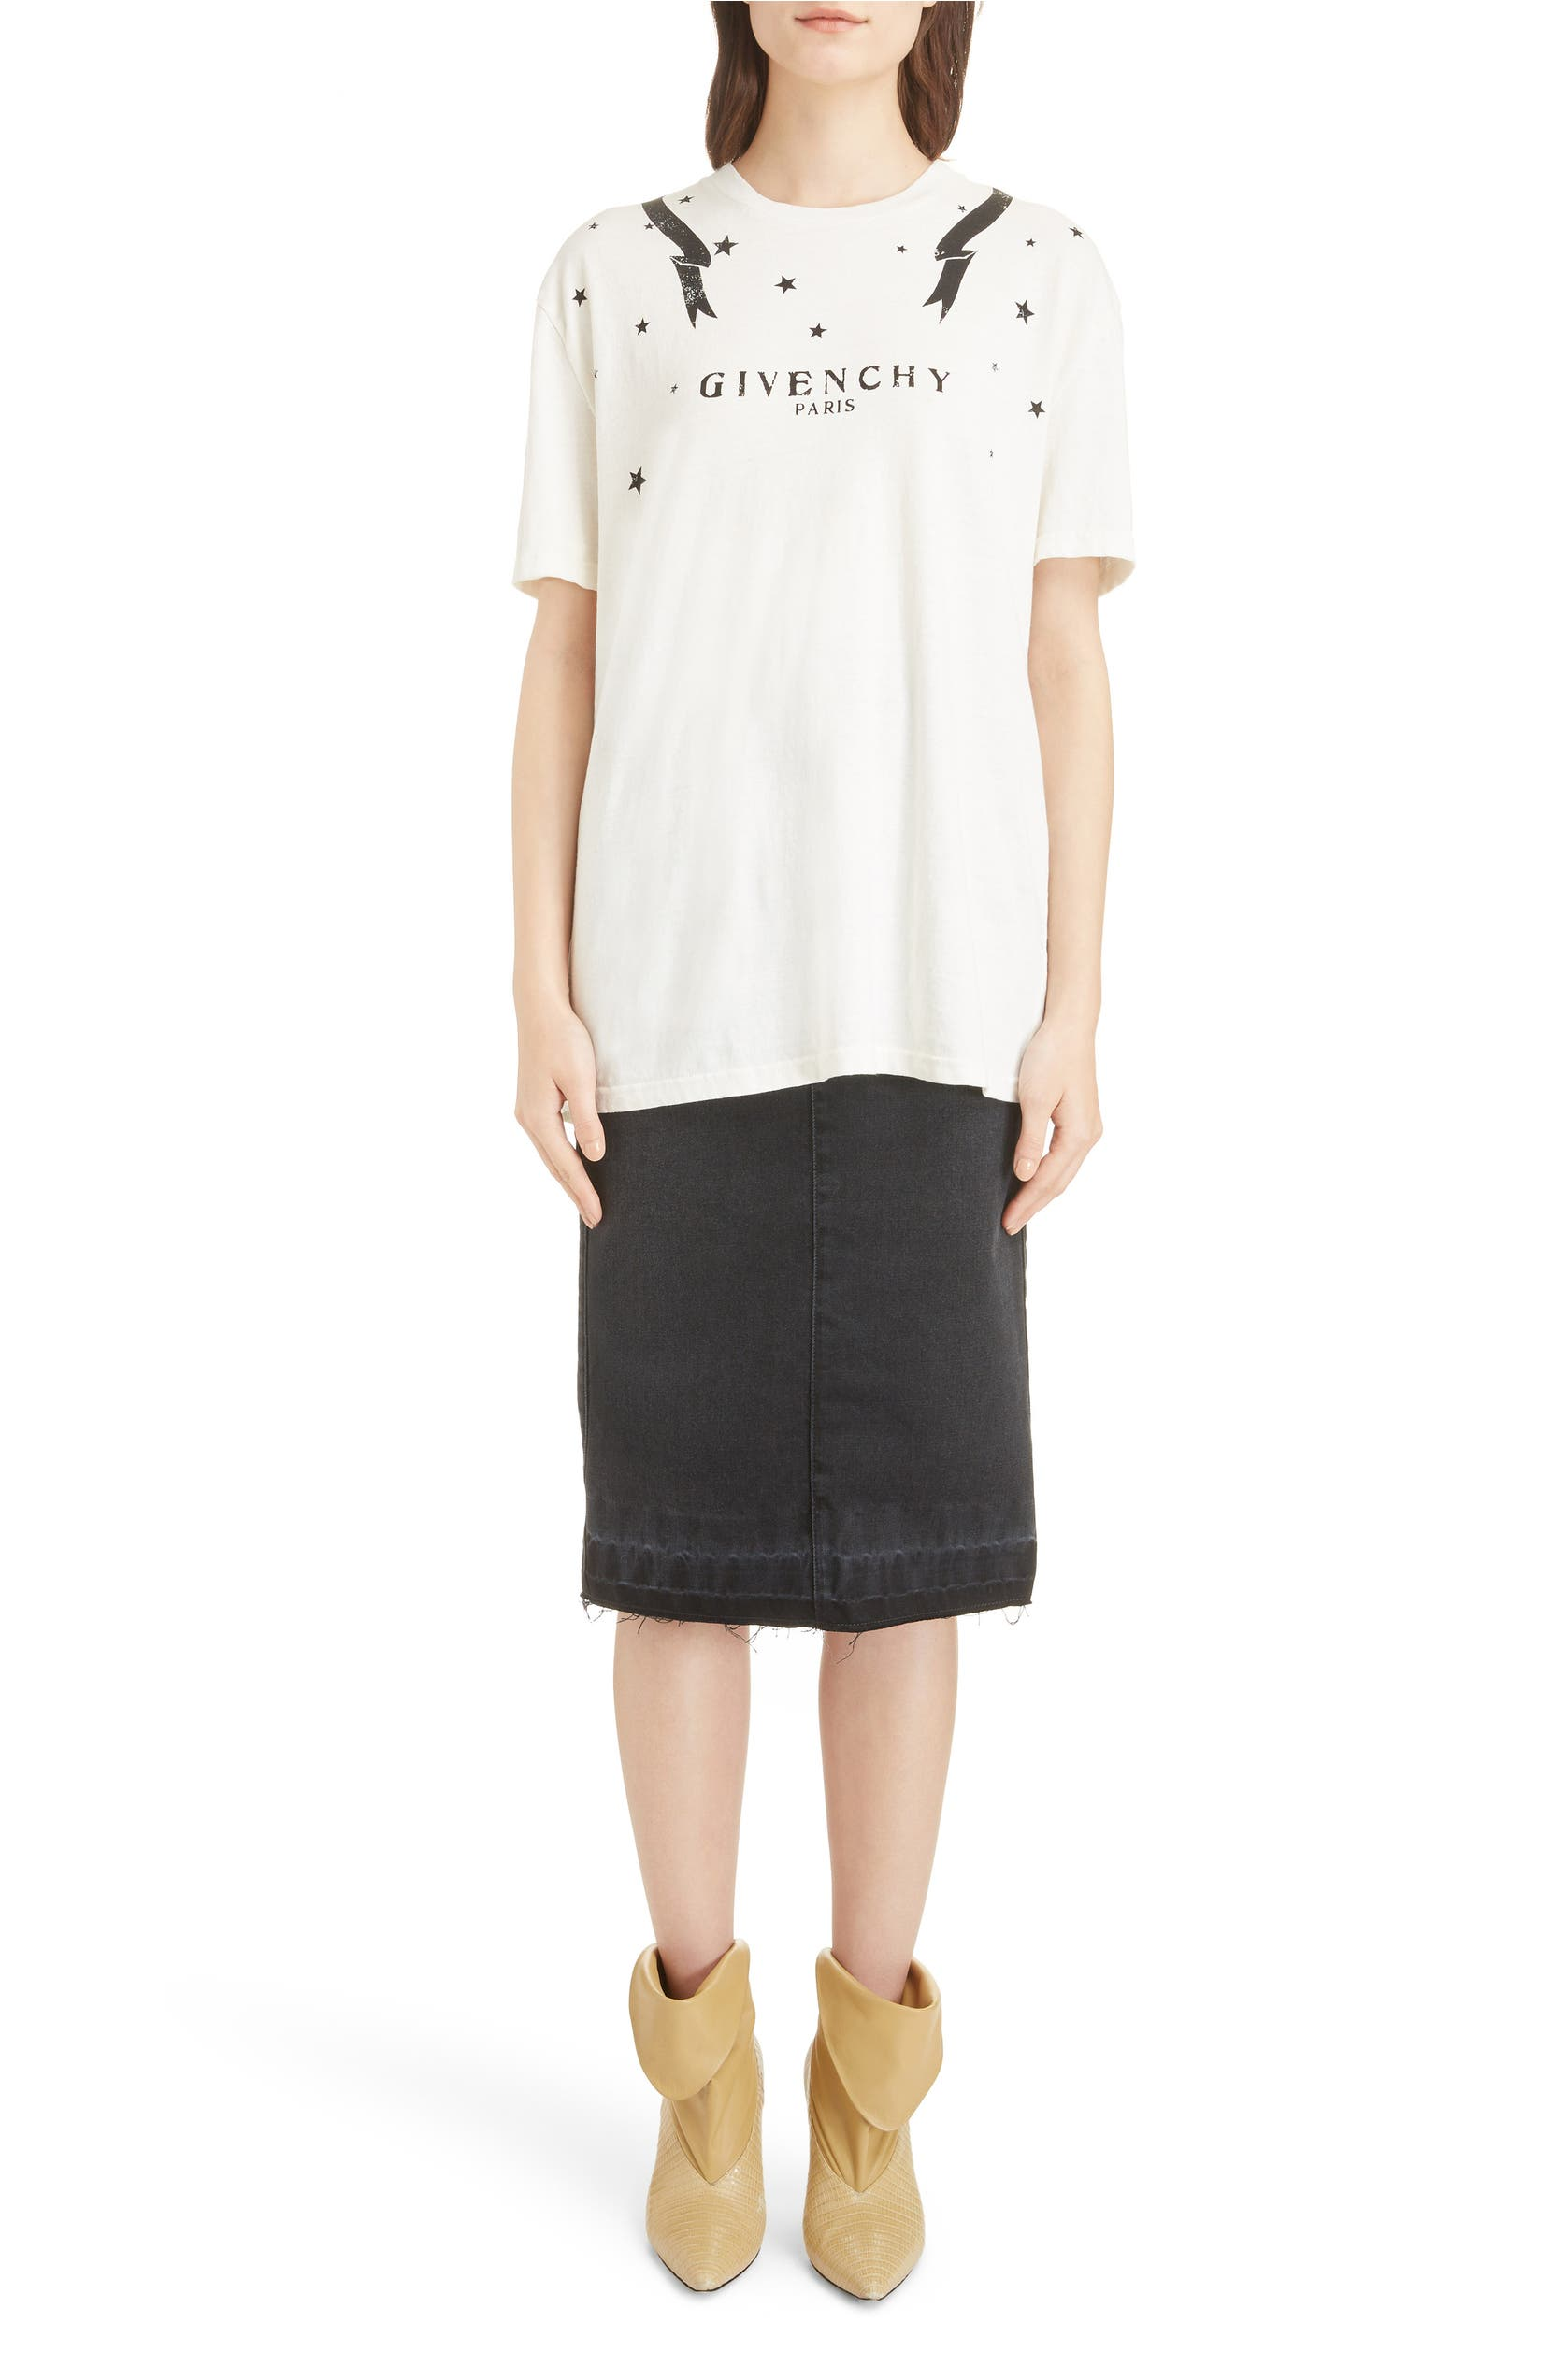 0880fb4d1 Givenchy Gemini Back Graphic Tee | Nordstrom